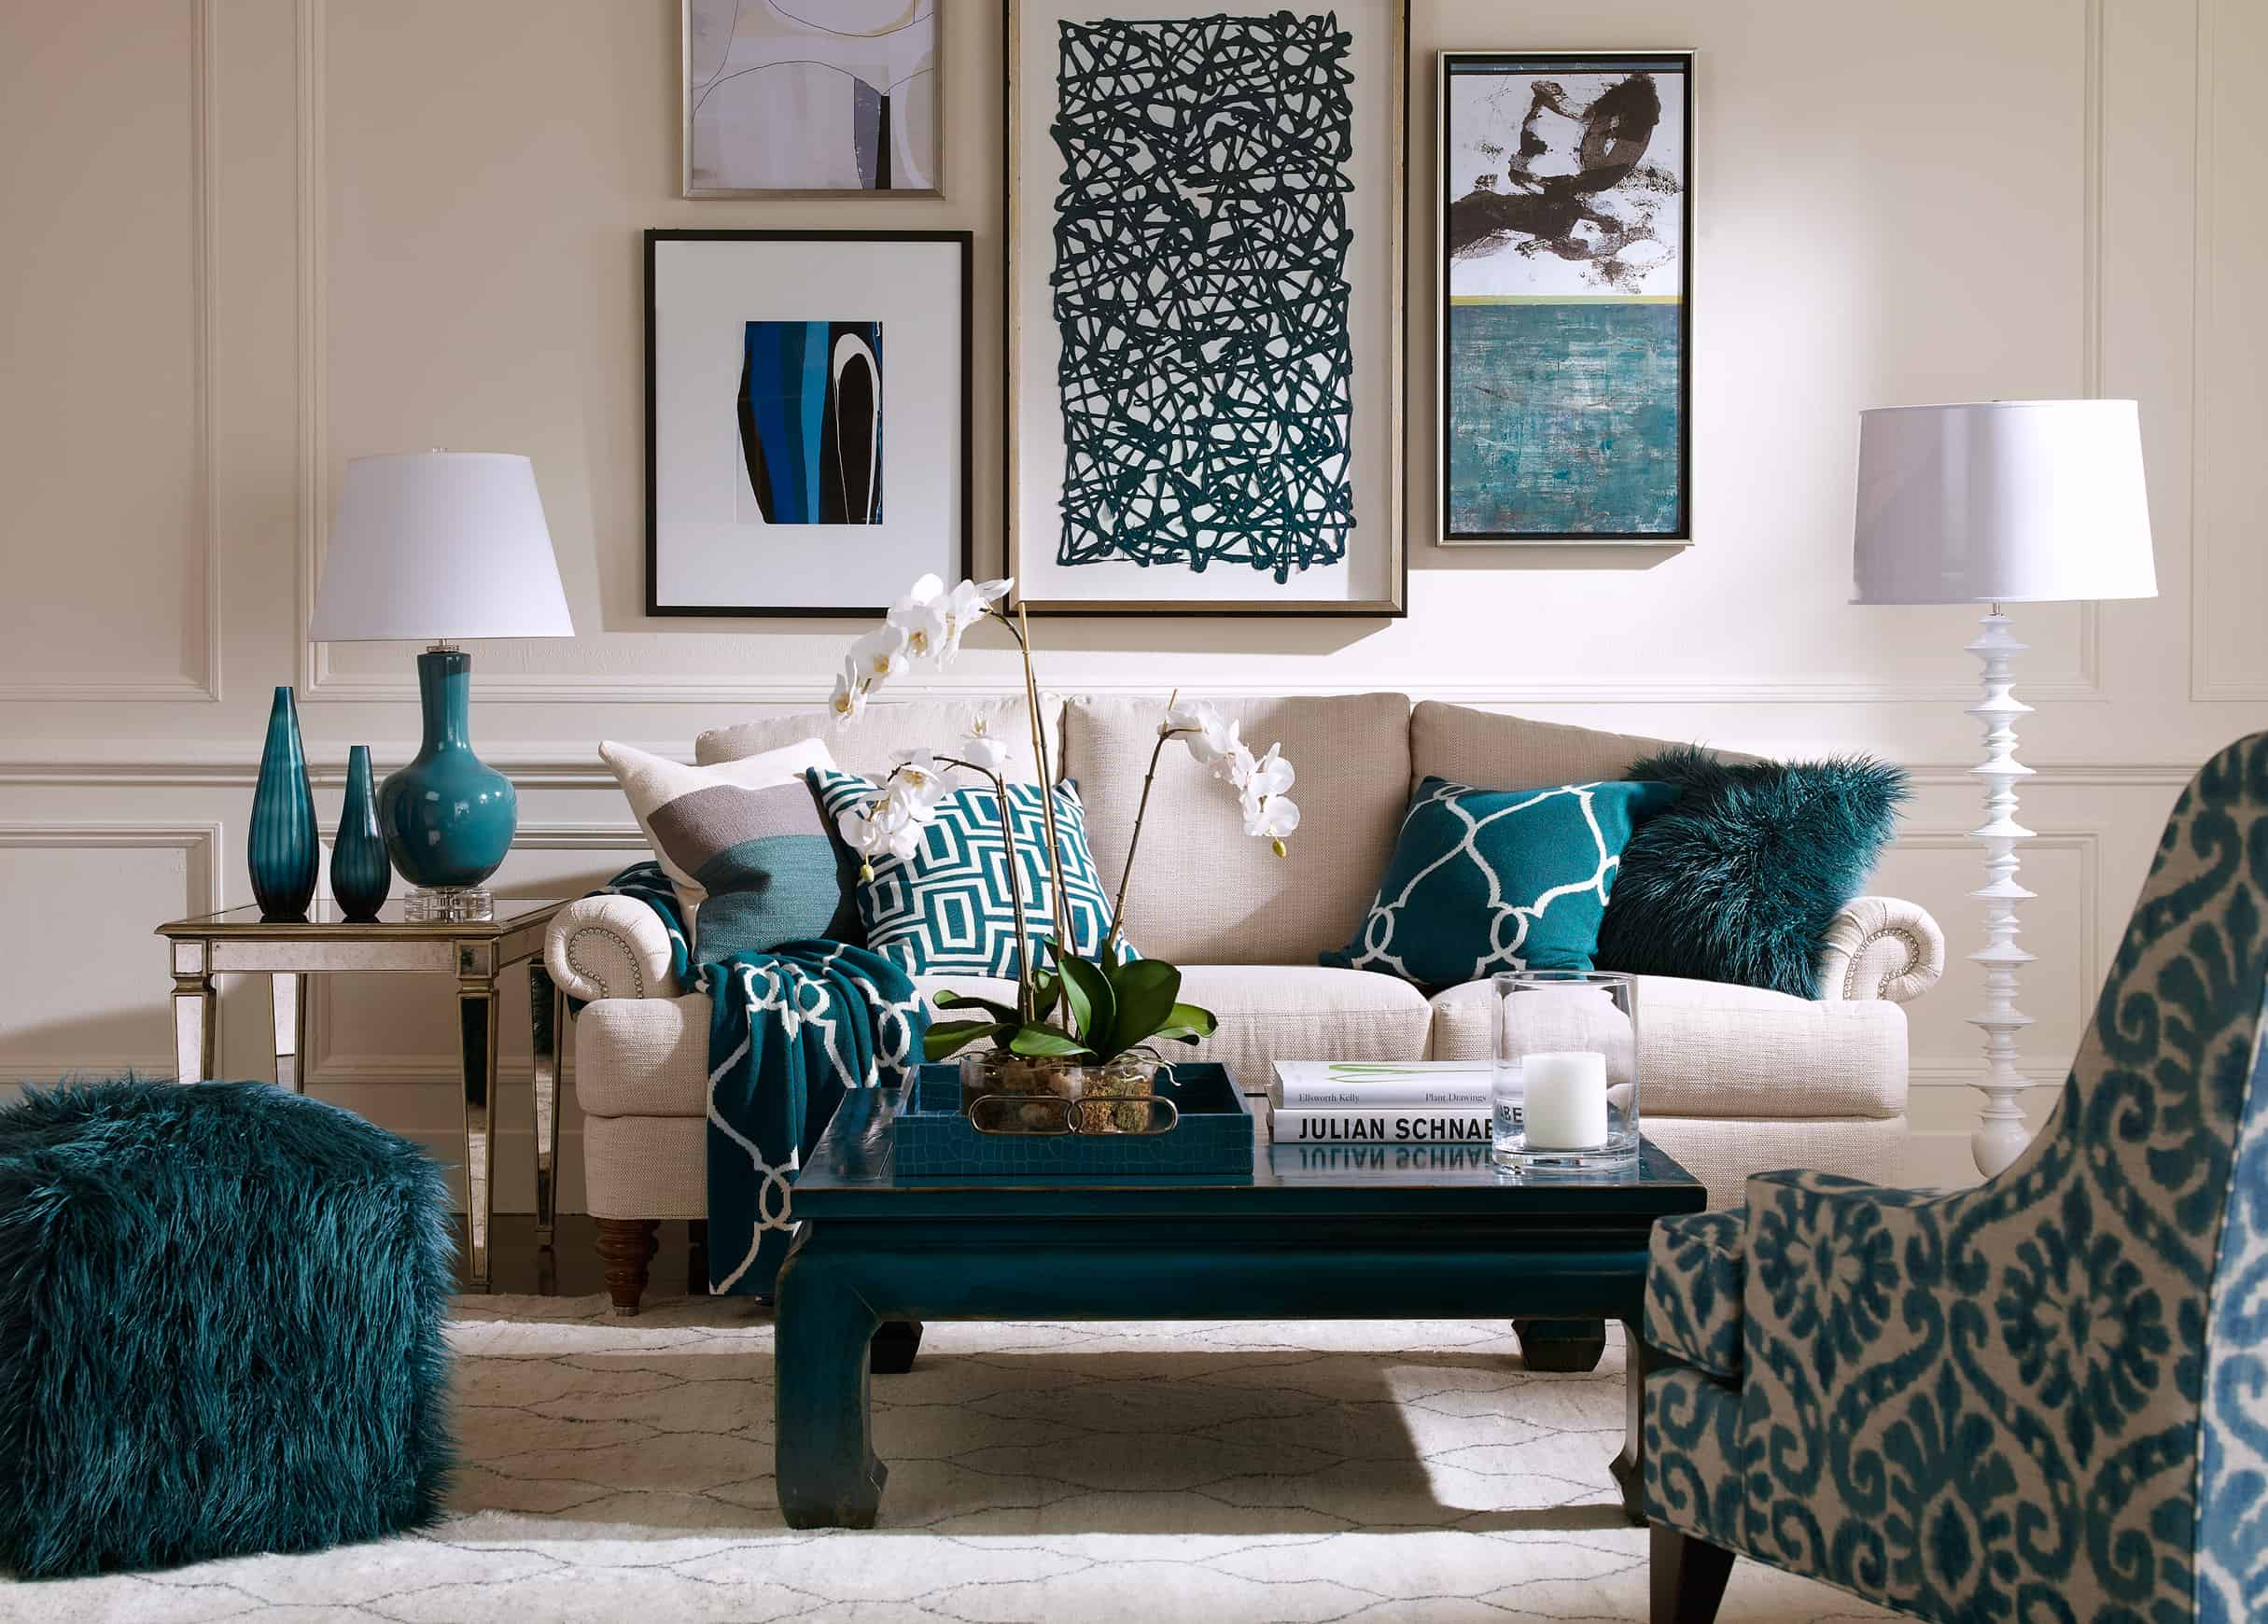 If you do not want to have more then one bold color consider using multiple different hues of the same shade.